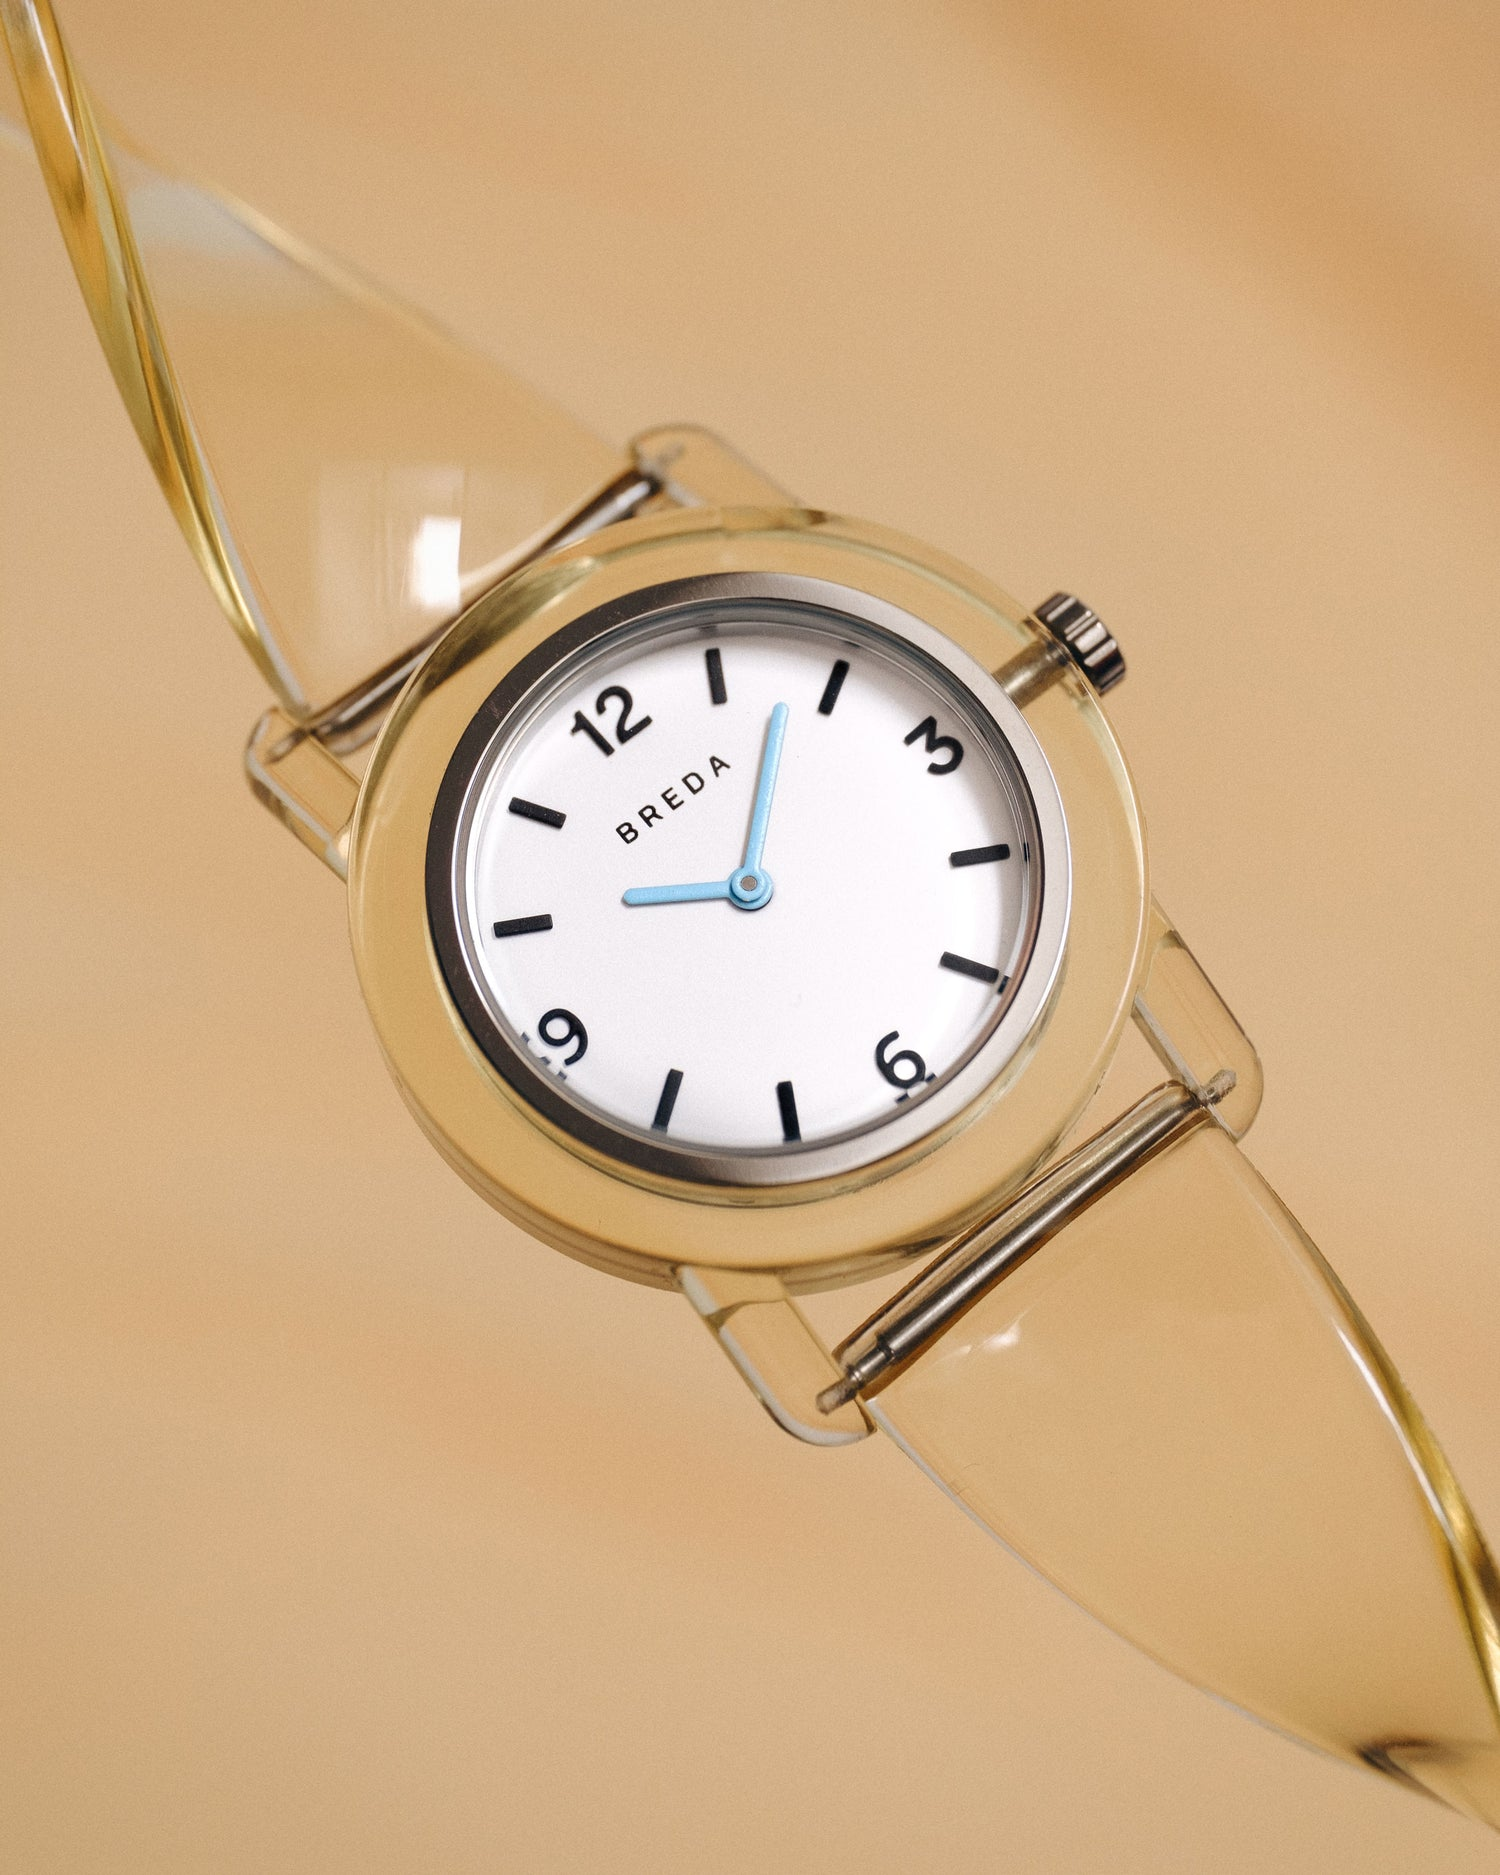 breda-play-1742b-silver-cream-plastic-watch-studio-06